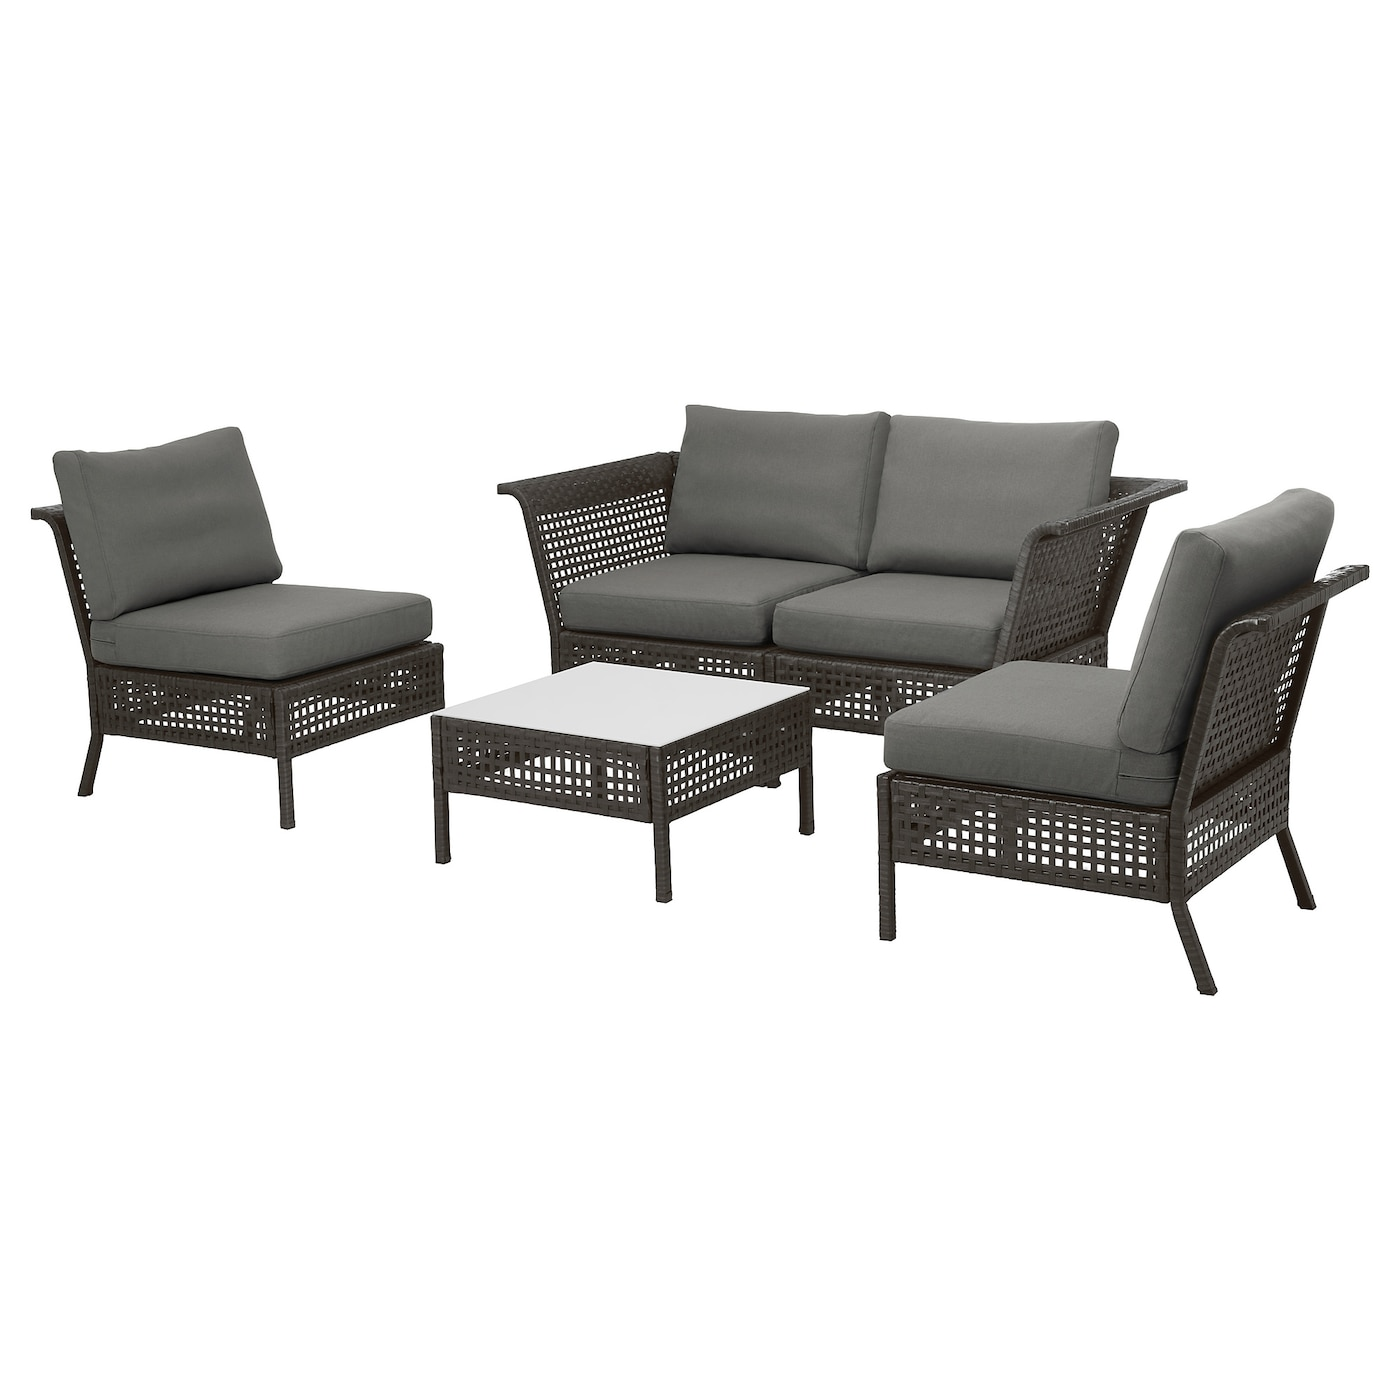 IKEA KUNGSHOLMEN 4-seat conversation set, outdoor